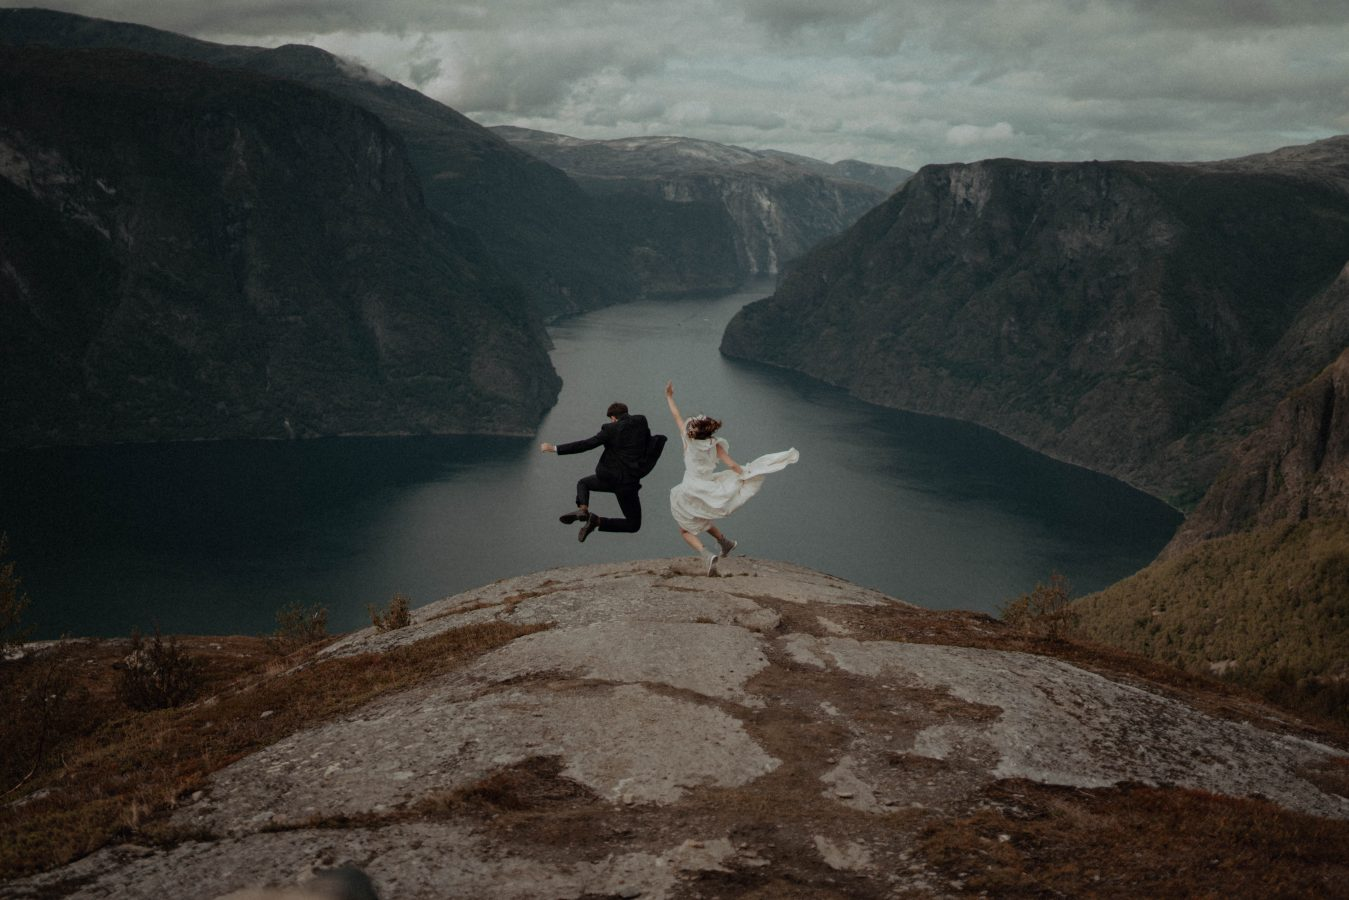 Norway Elopement Photographer, Belle Art Photography. An Image of an Elopement in Aurland, Norway